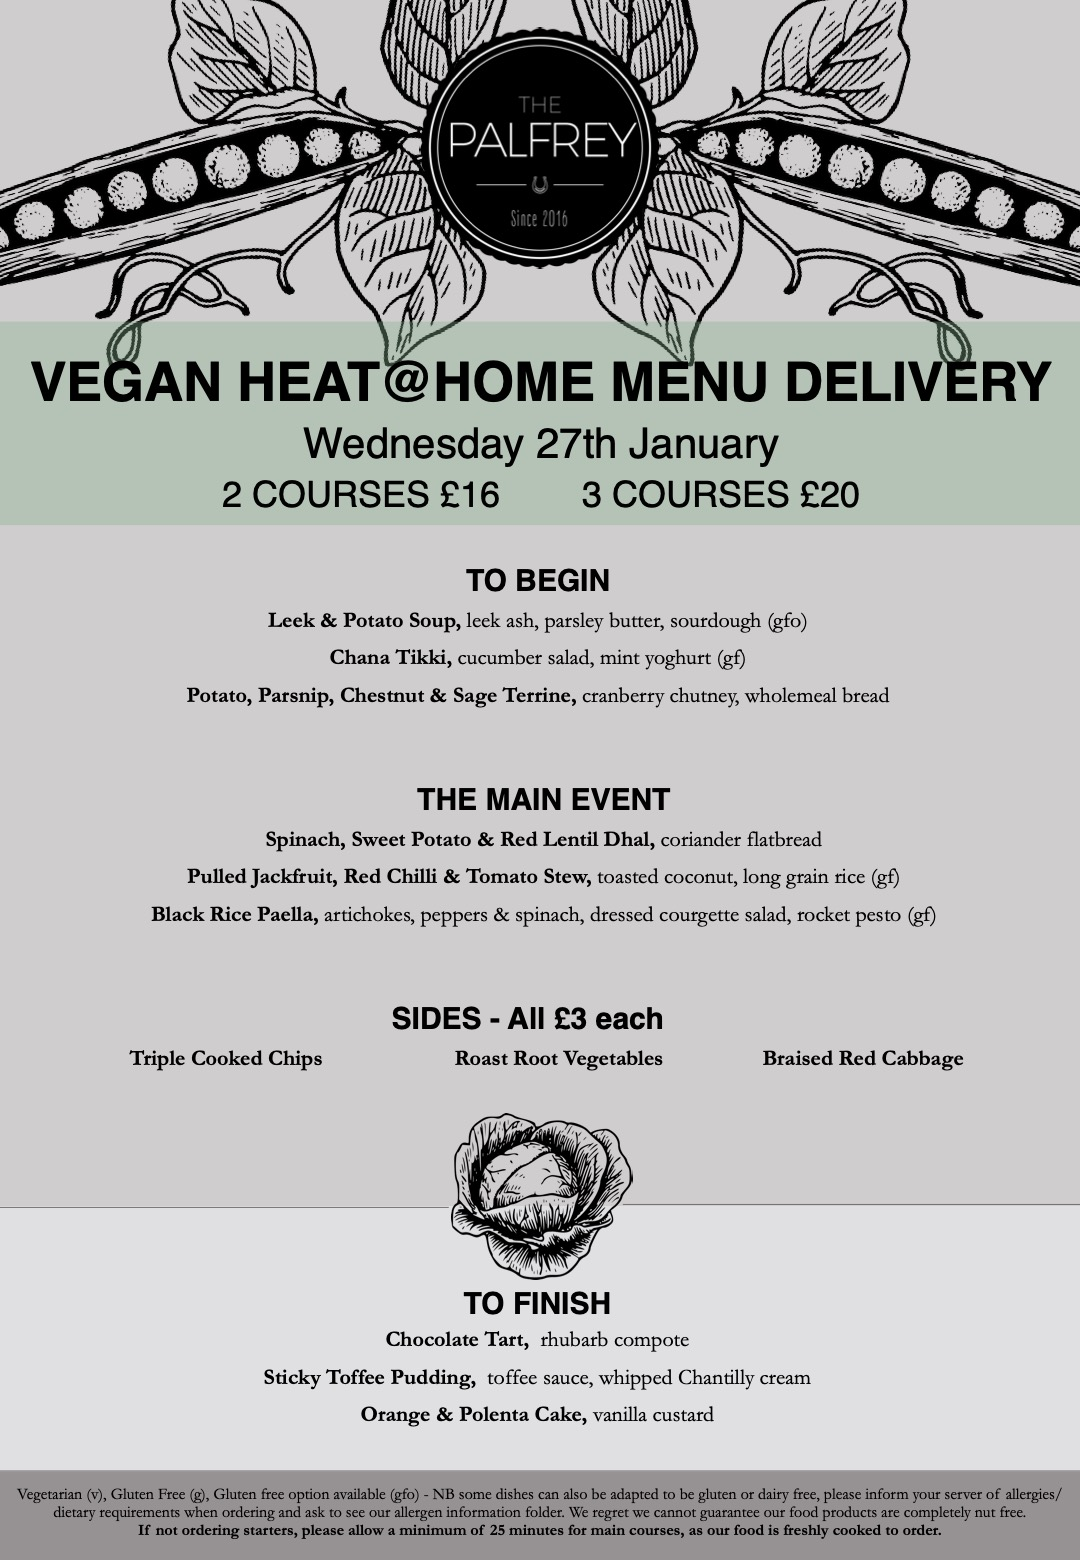 vegan delivery menu